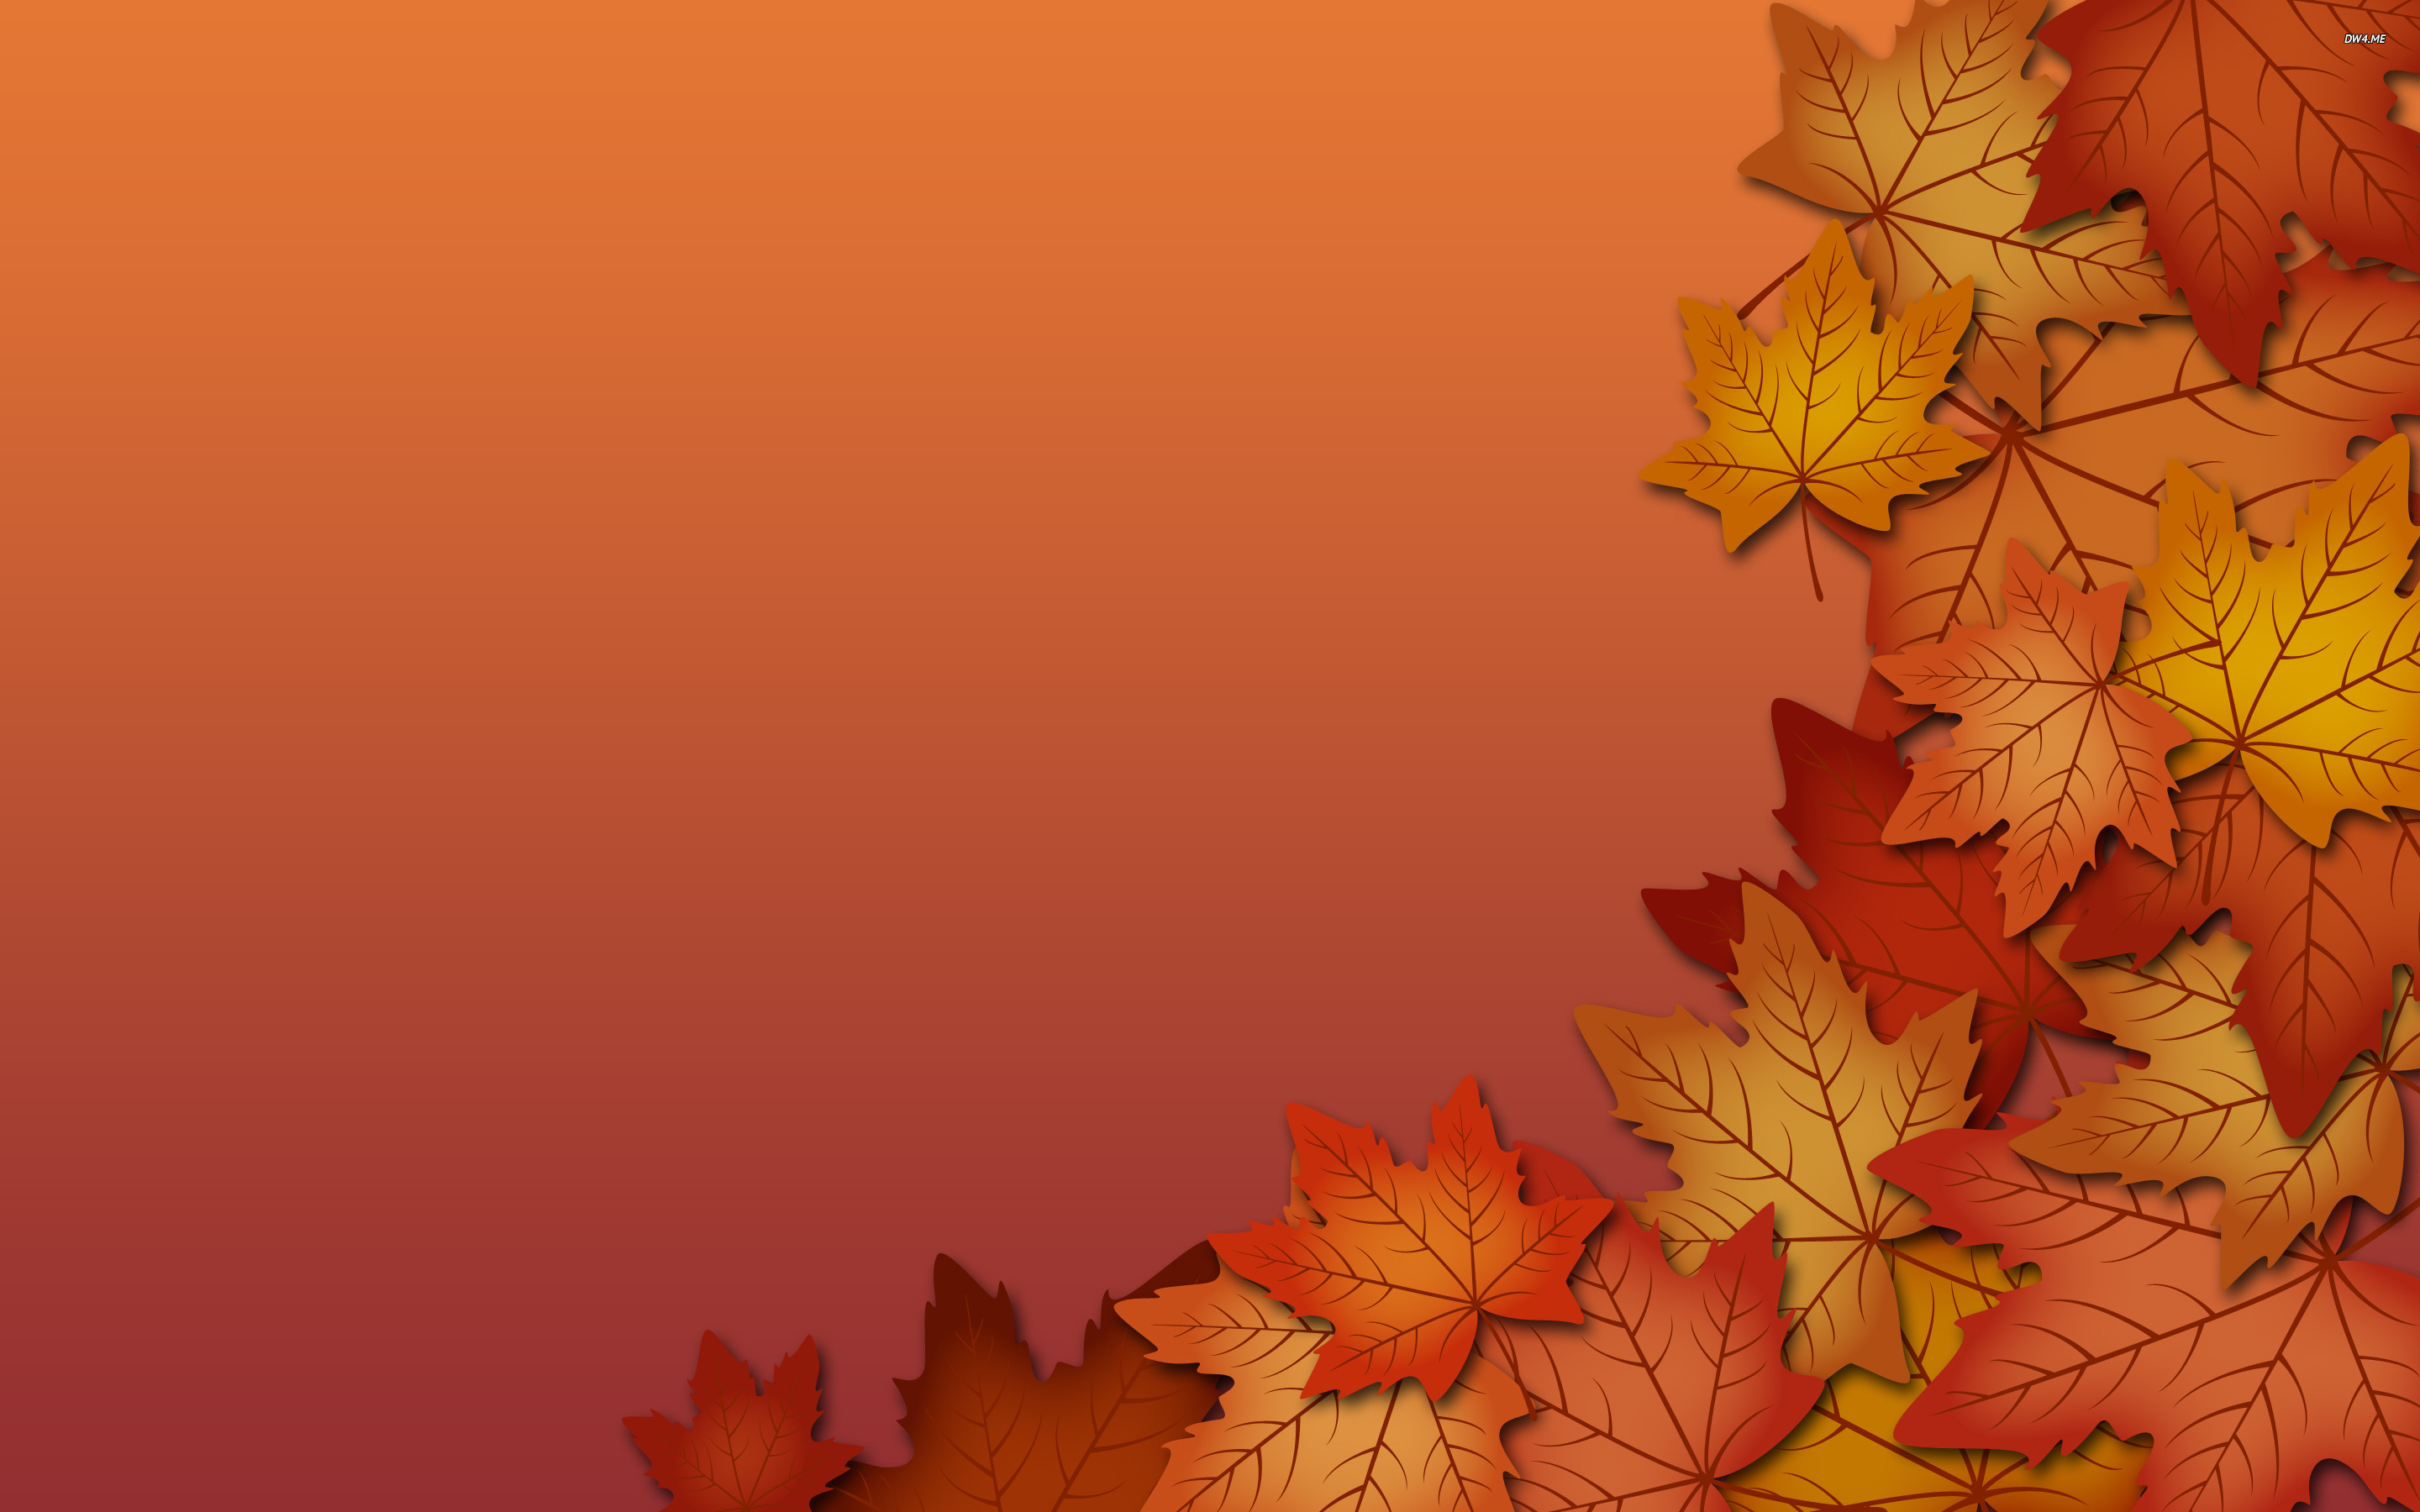 Fall Vector Free At Getdrawings Com Free For Personal Use